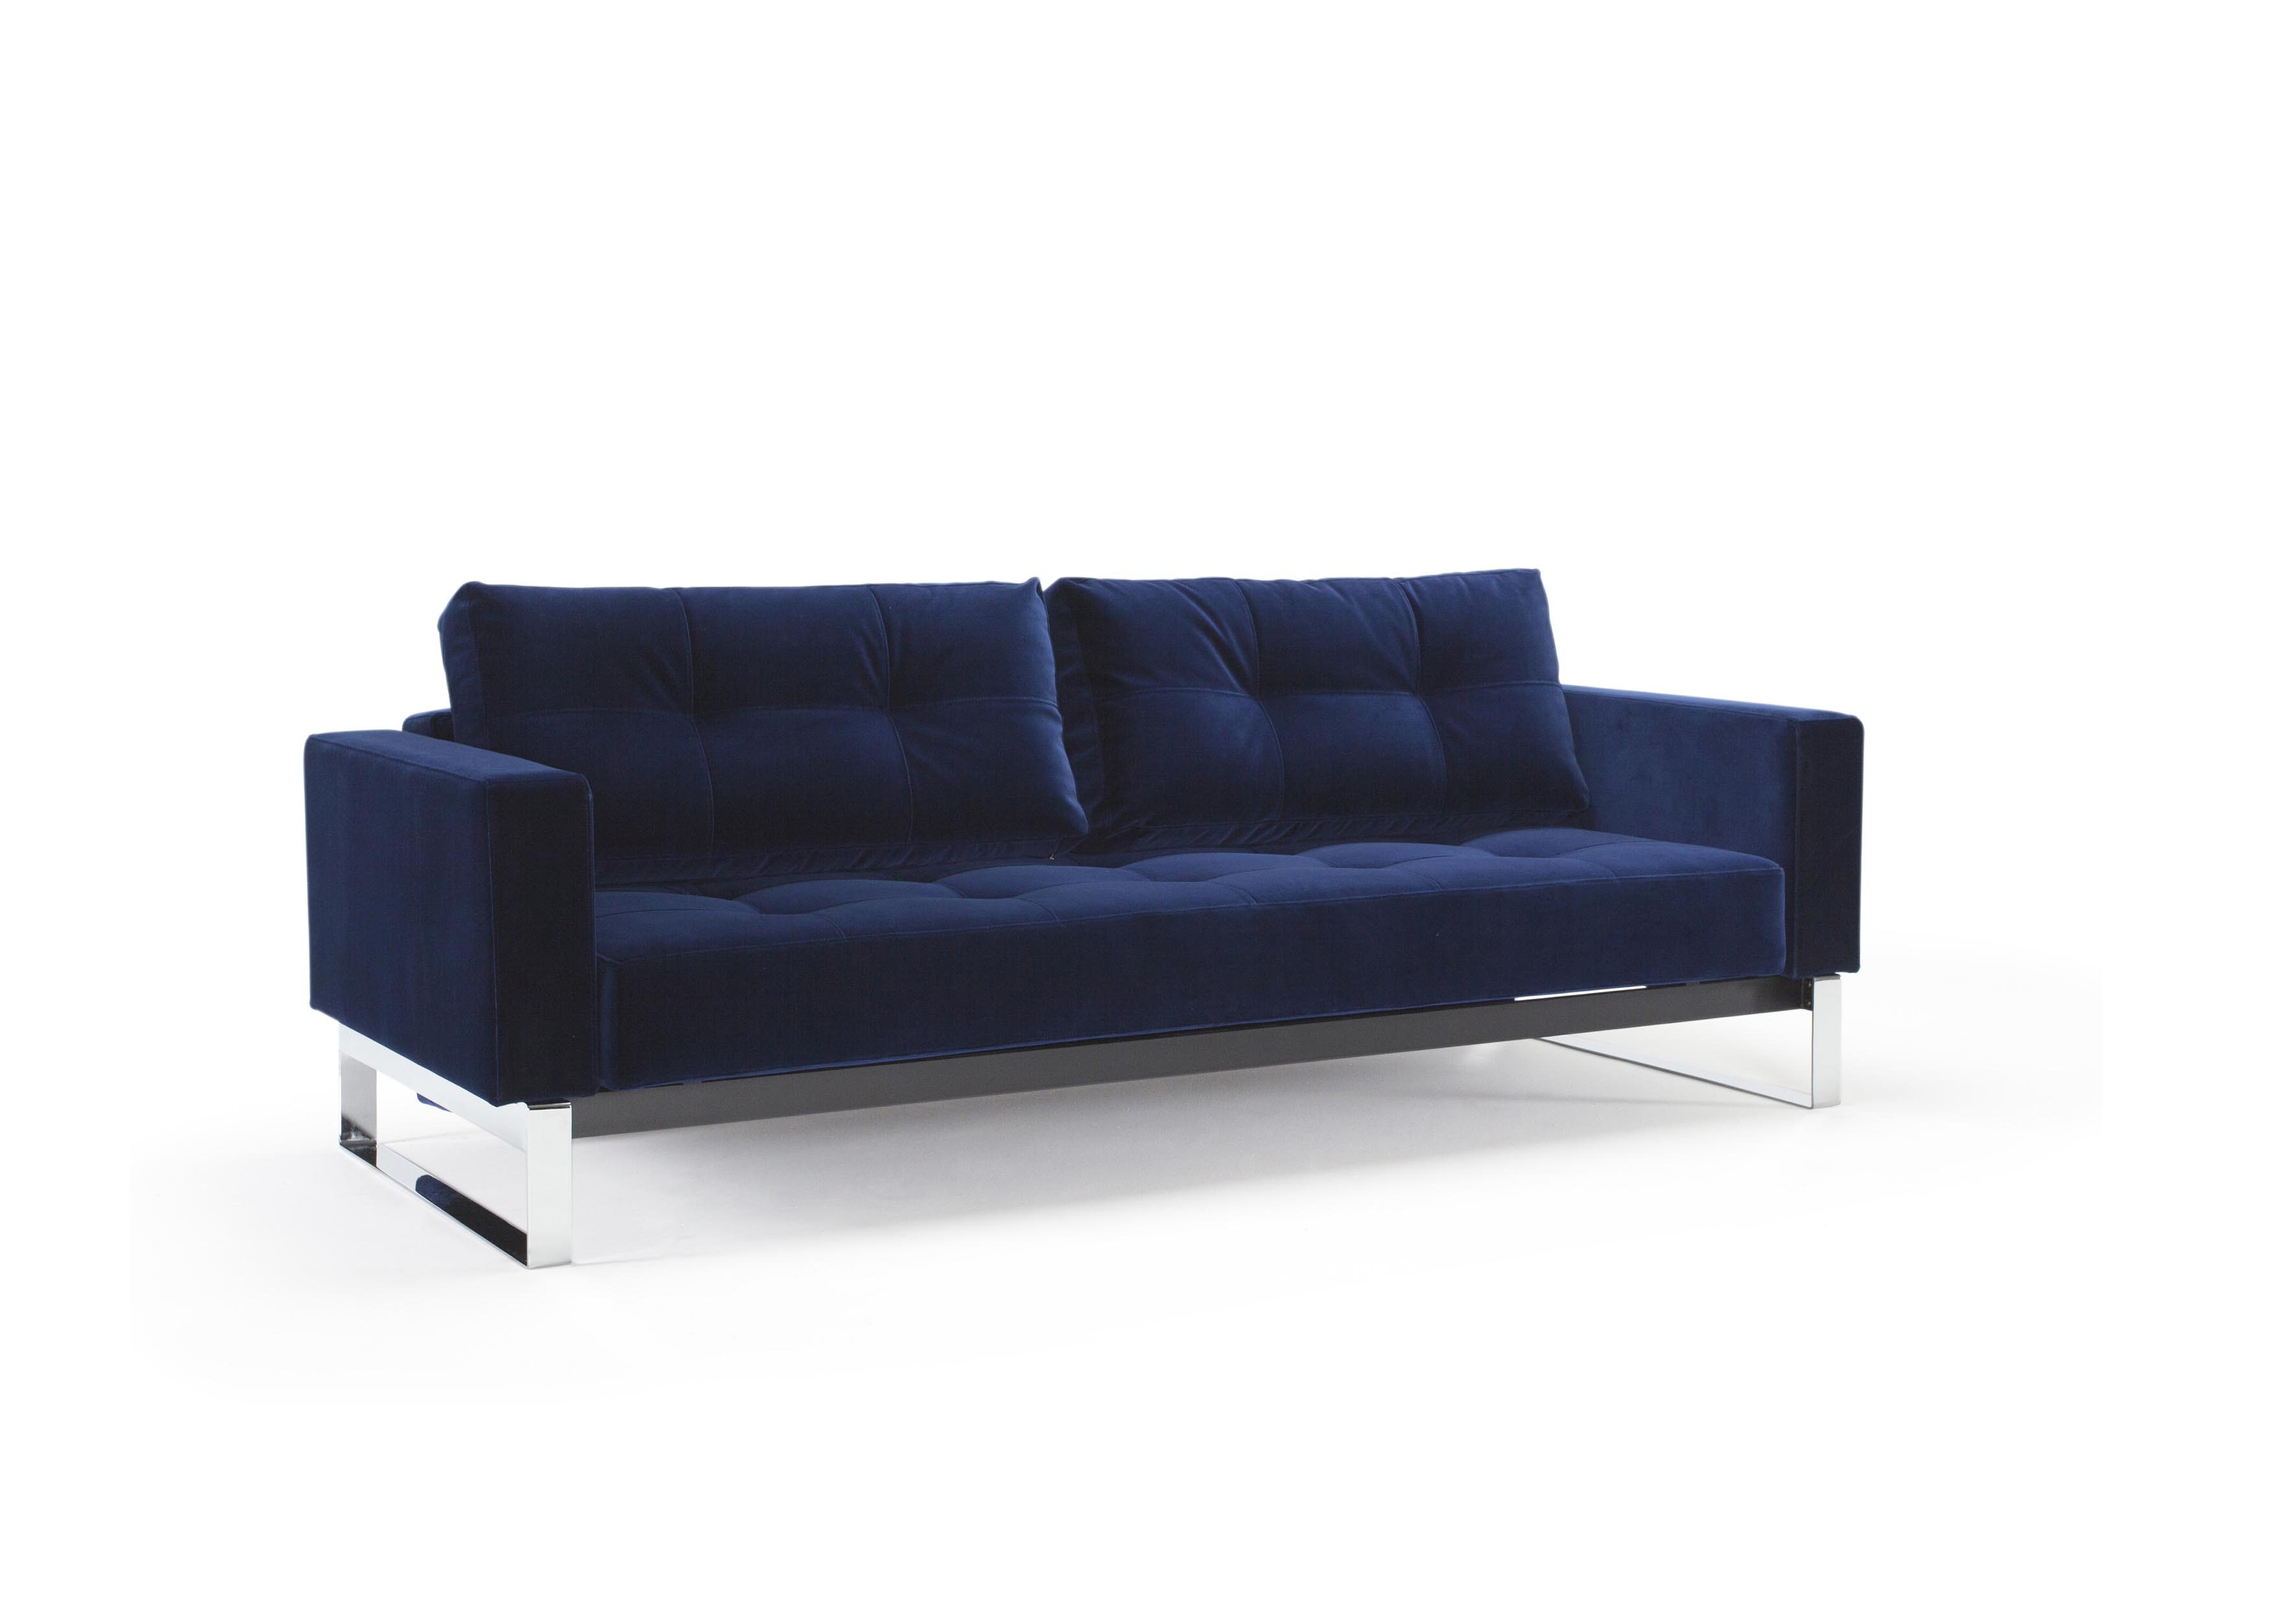 Cassius Velvet Sofa Bed Full Size Vintage Velvet Blue By